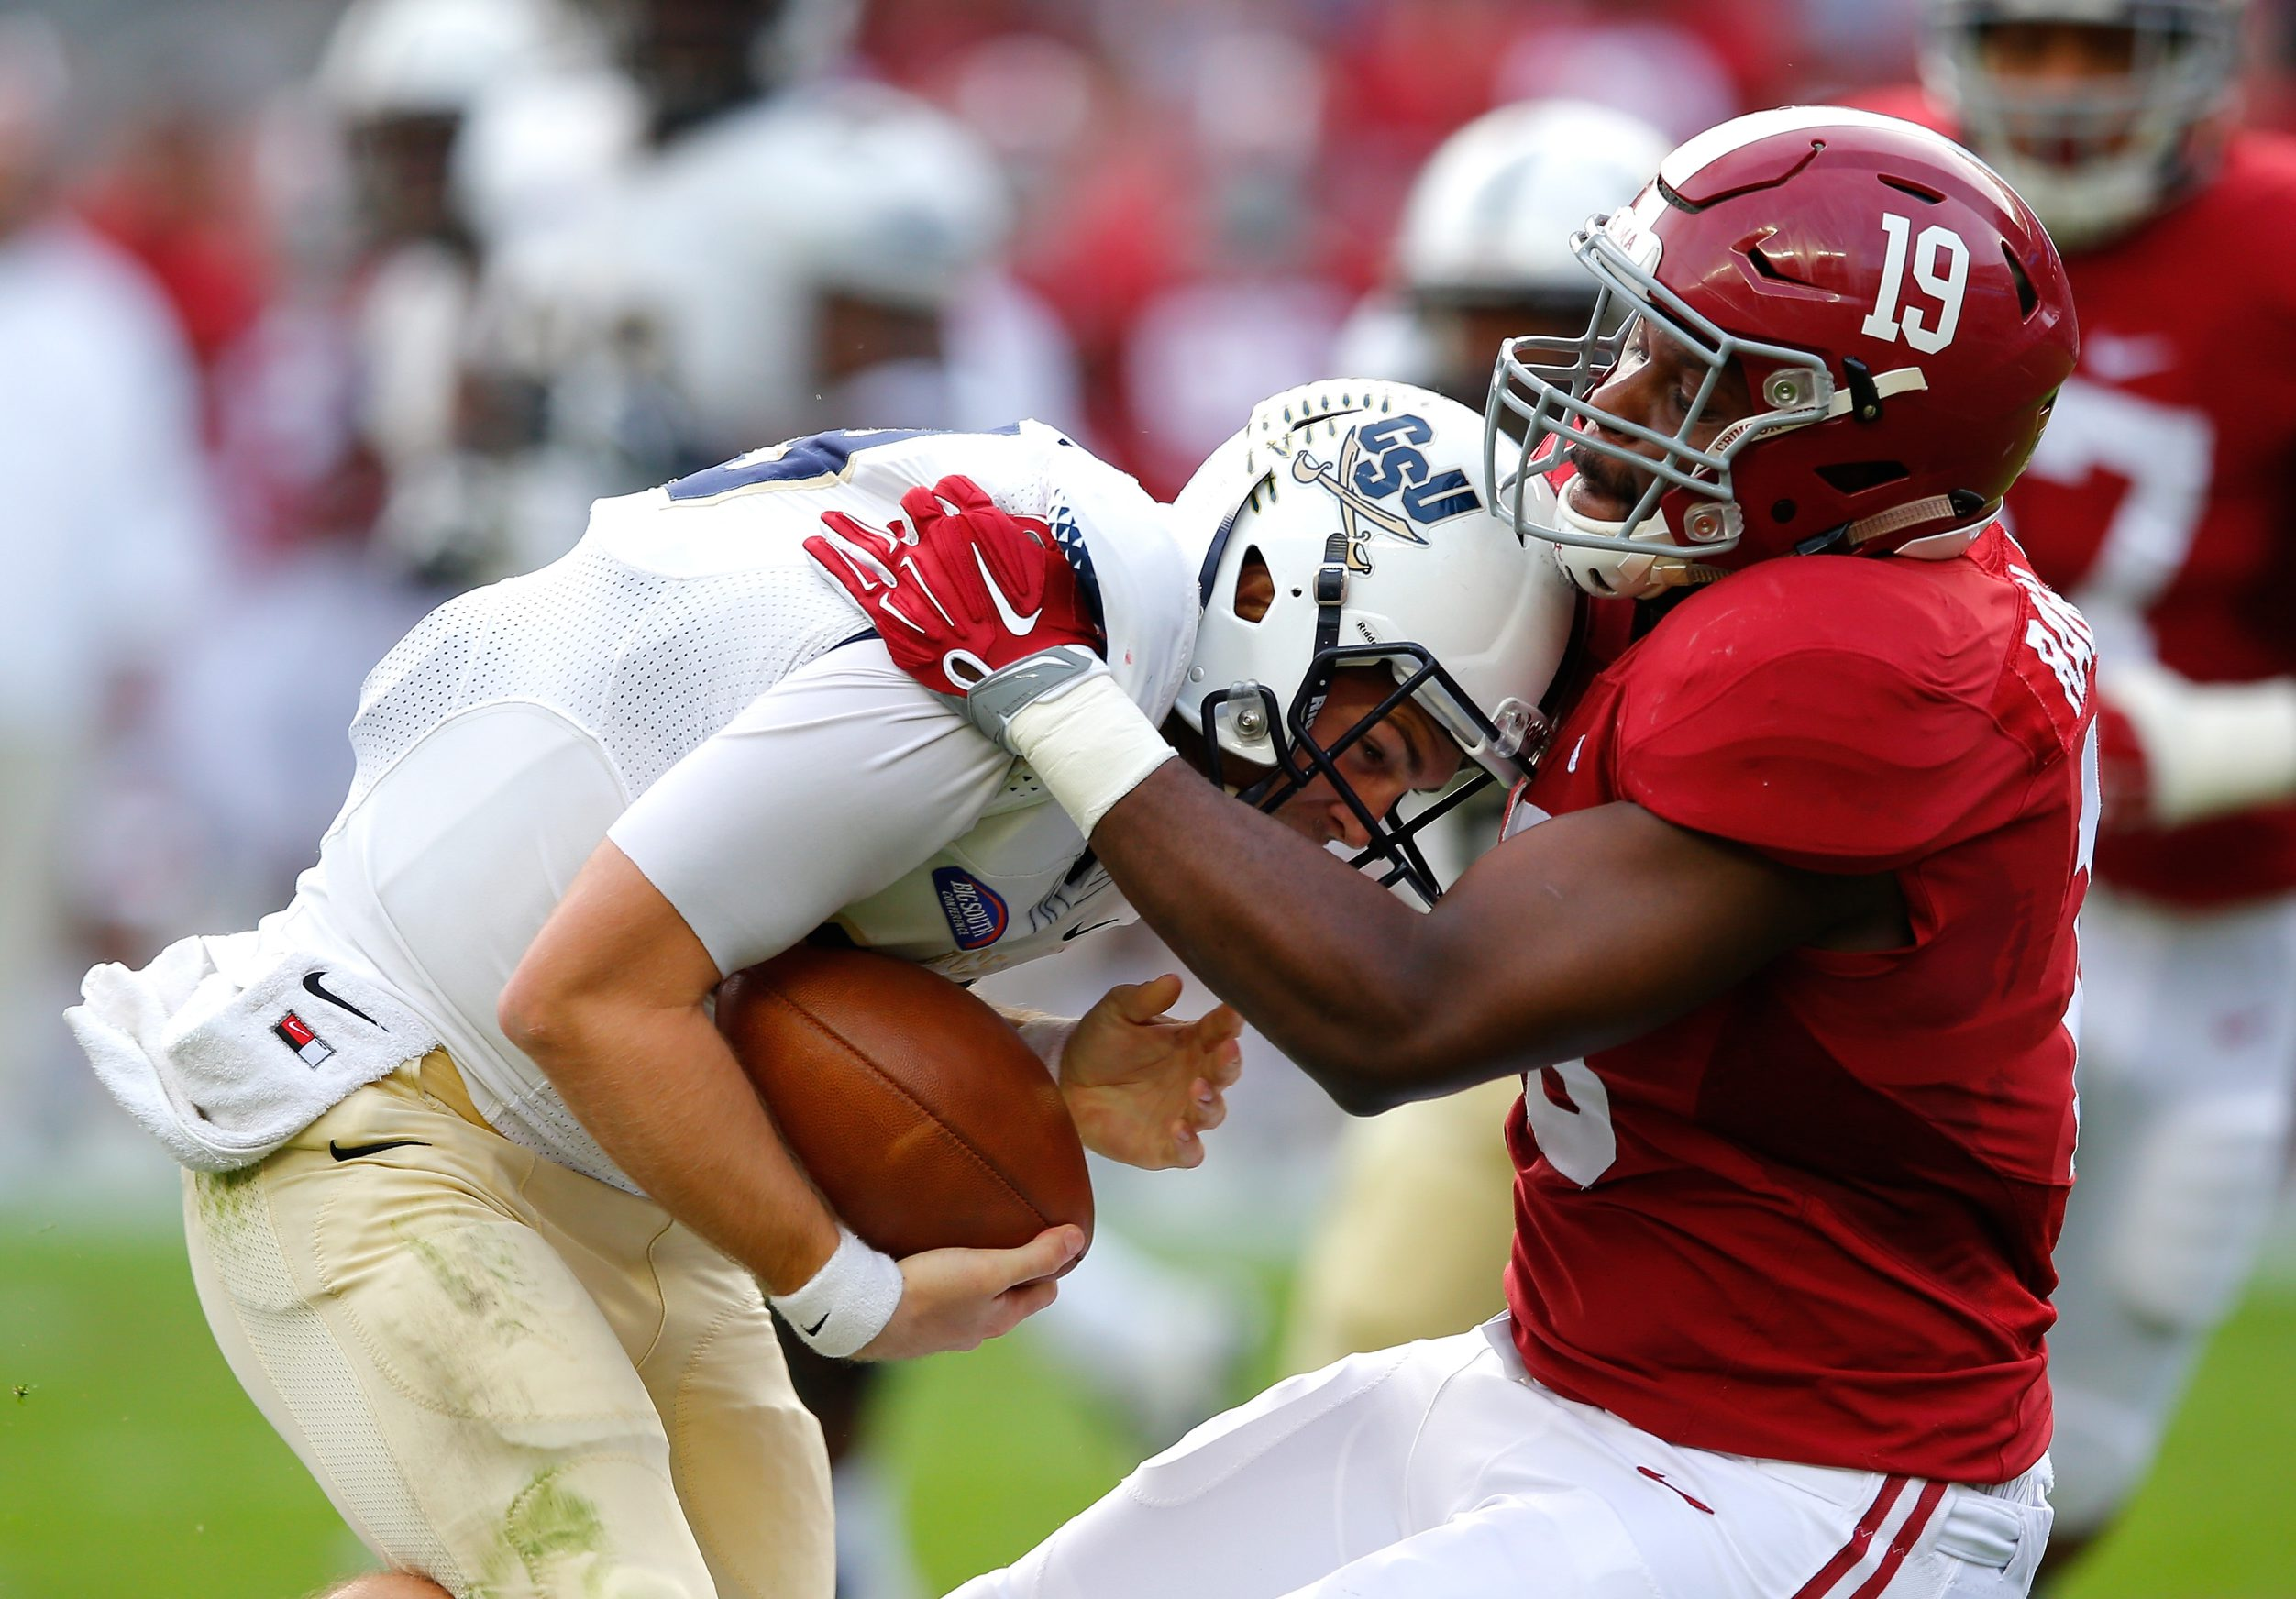 TUSCALOOSA, AL - NOVEMBER 21: Reggie Ragland #19 of the Alabama Crimson Tide sacks Kyle Copeland #19 of the Charleston Southern Buccaneers at Bryant-Denny Stadium on November 21, 2015 in Tuscaloosa, Alabama. (Photo by Kevin C. Cox/Getty Images)